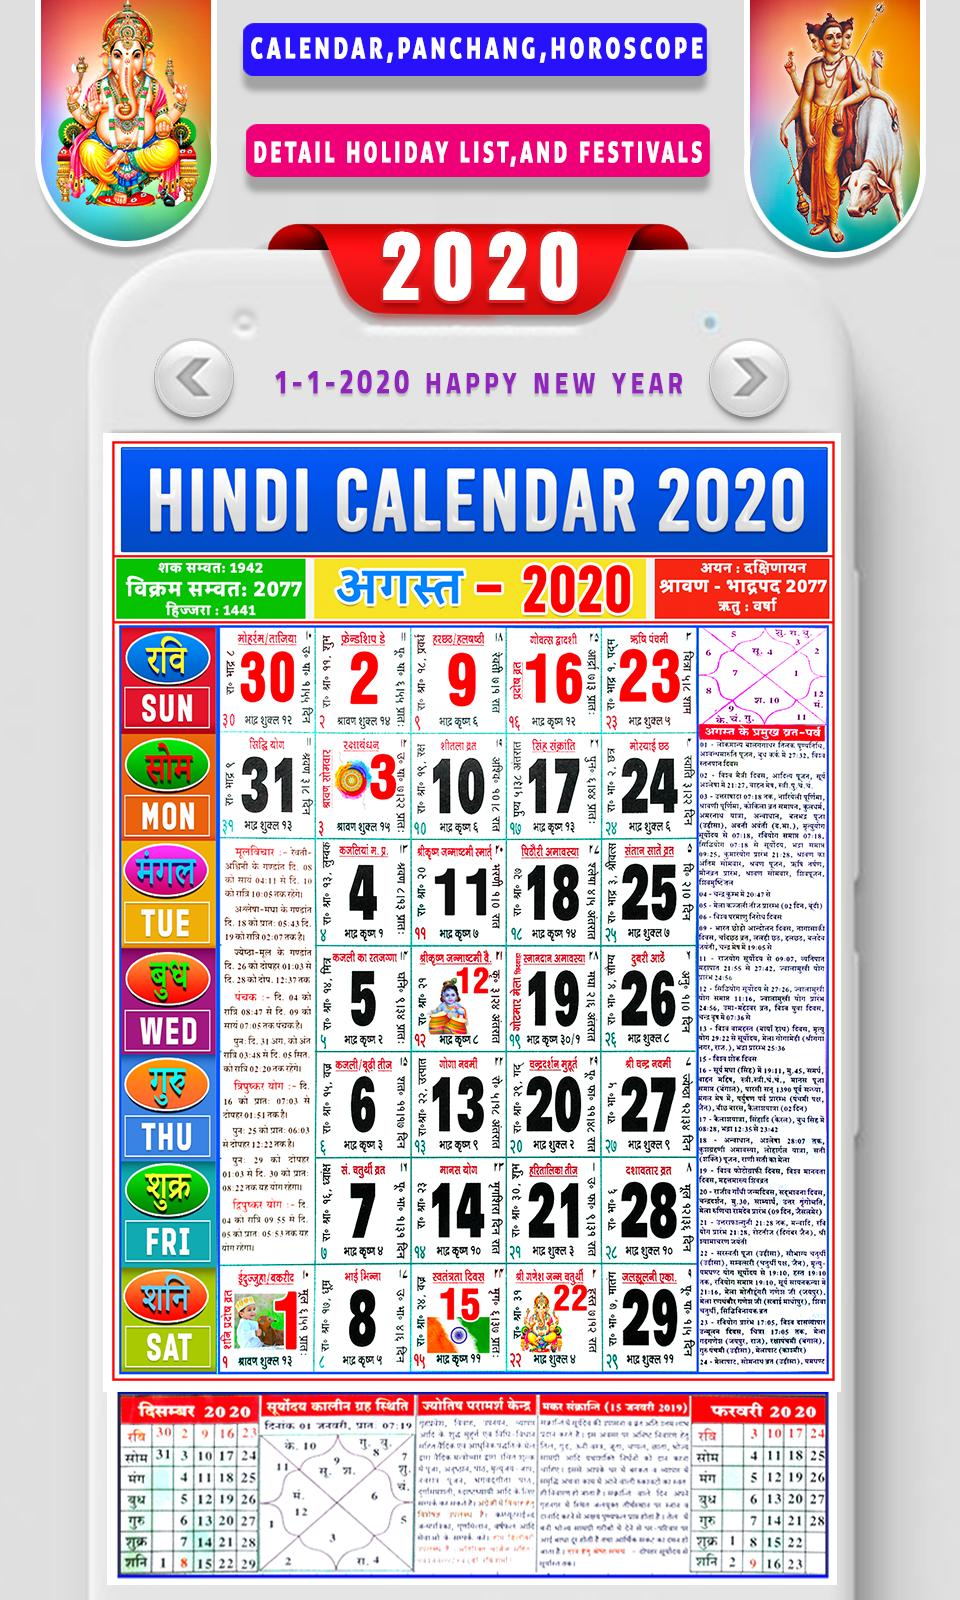 Hindi Calendar 2020  हिंदी कैलेंडर 2020 in Gujarati Month Calendar 2020